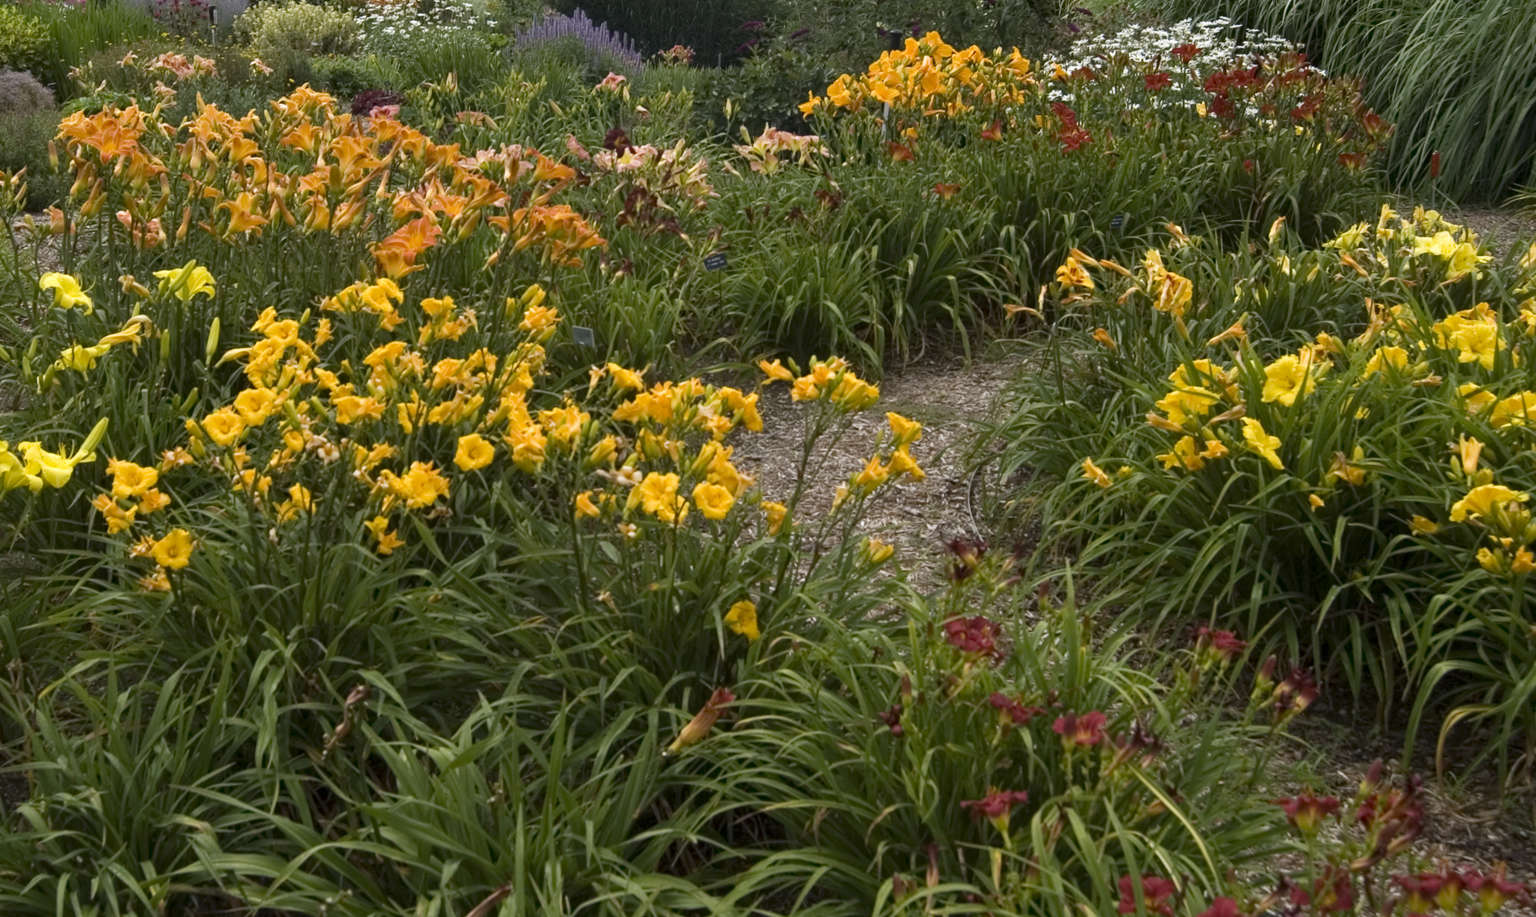 Designing with daylilies walters gardens inc perhaps the most common use of daylilies is in mixed borders plantings that may border walkways fences terraces pools lawns hedges curb sides izmirmasajfo